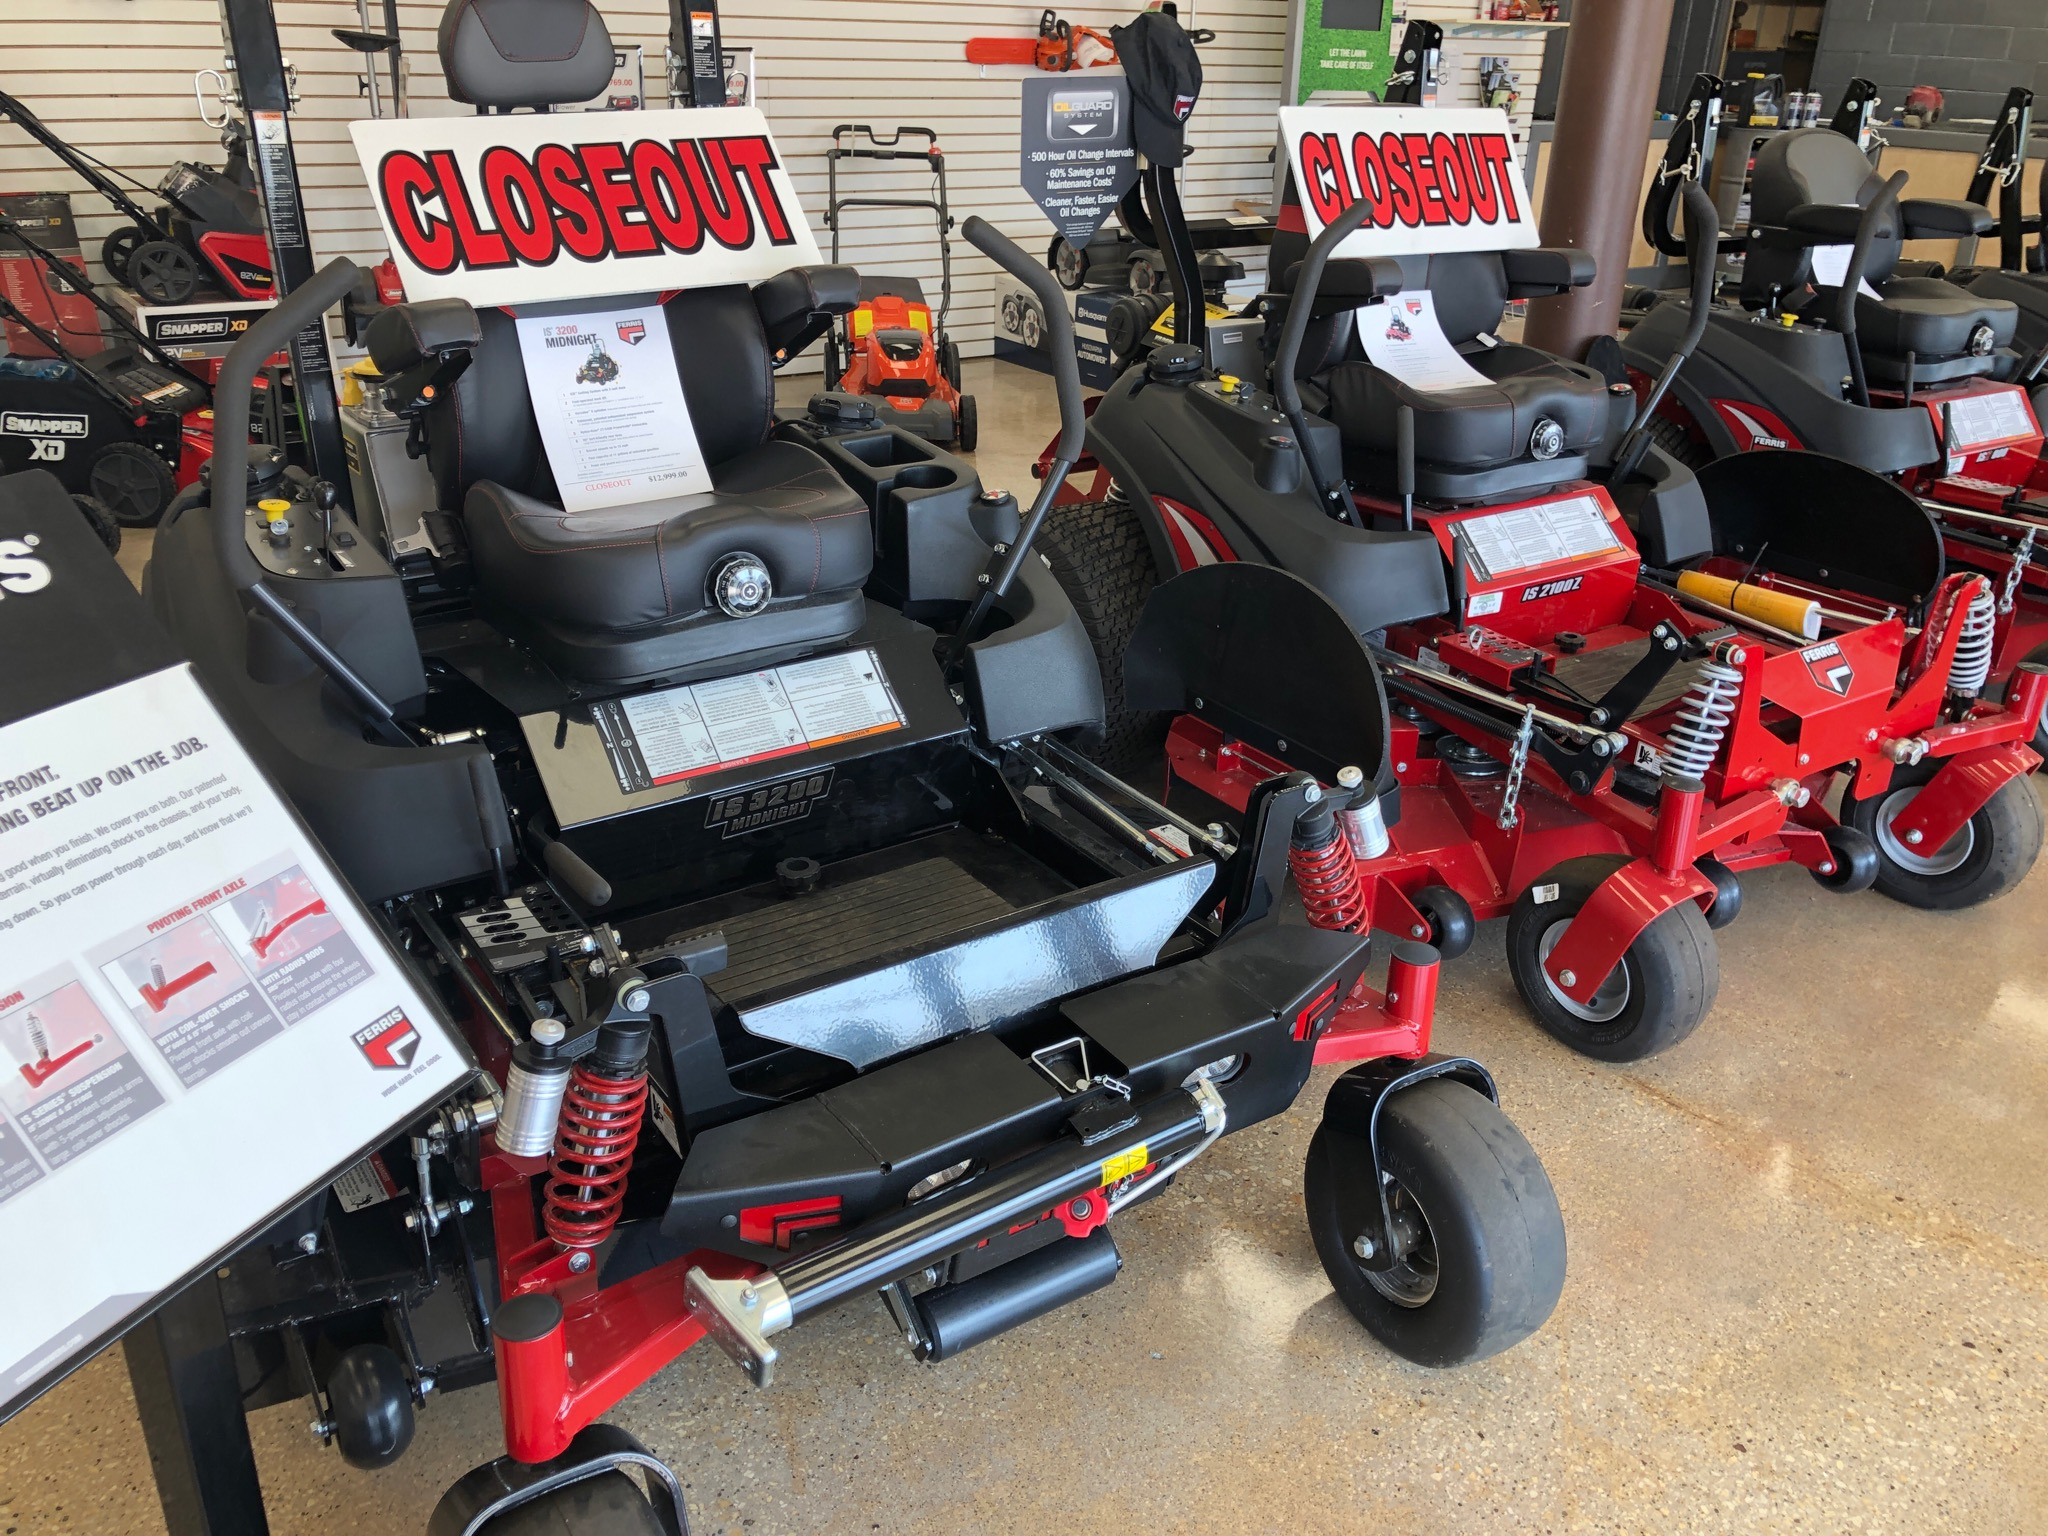 2 Ferris Zero turns at closseout prices for sale at Steve's Small Engine in La Crosse, WI